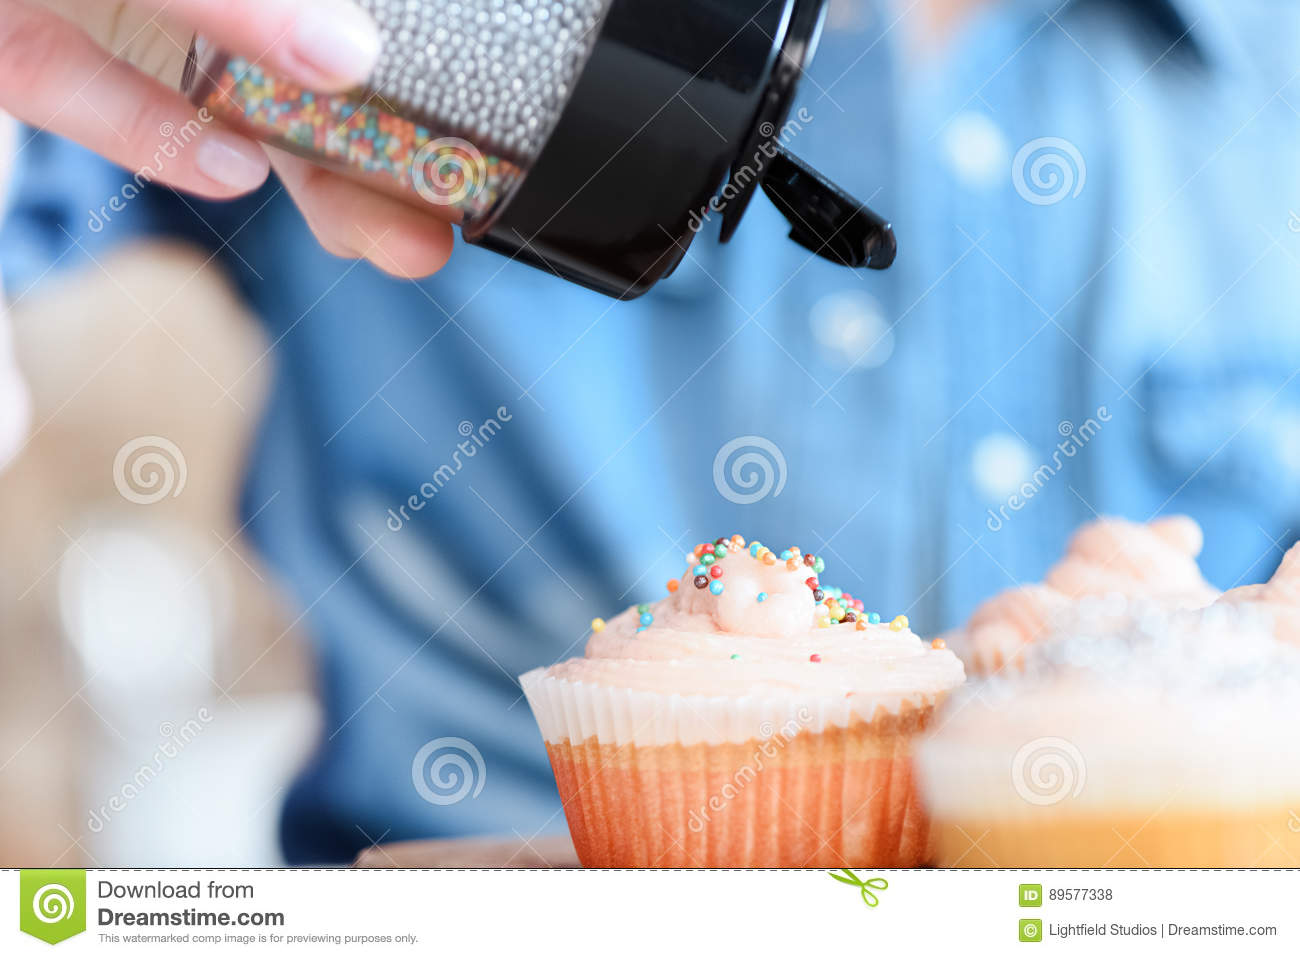 woman decorating cupcakes with confetti - Woman Decorating Cupcakes